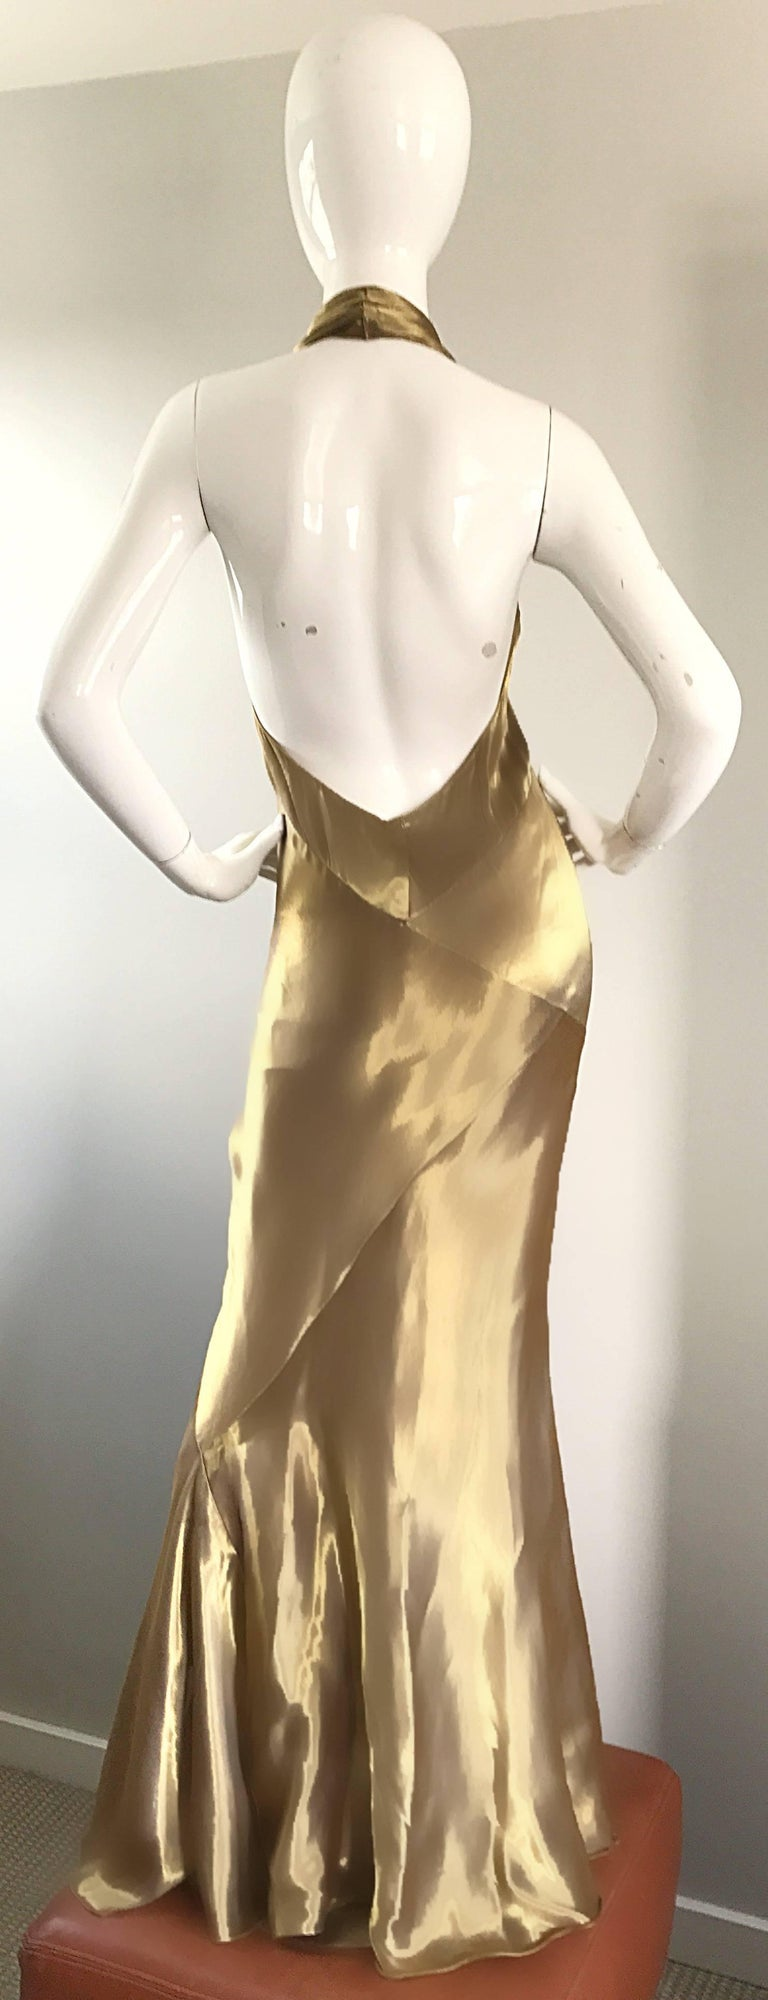 Stunning Vintage Donna Karan 1990s Liquid Gold Silk Plunging 90s Halter Gown In Excellent Condition For Sale In Chicago, IL